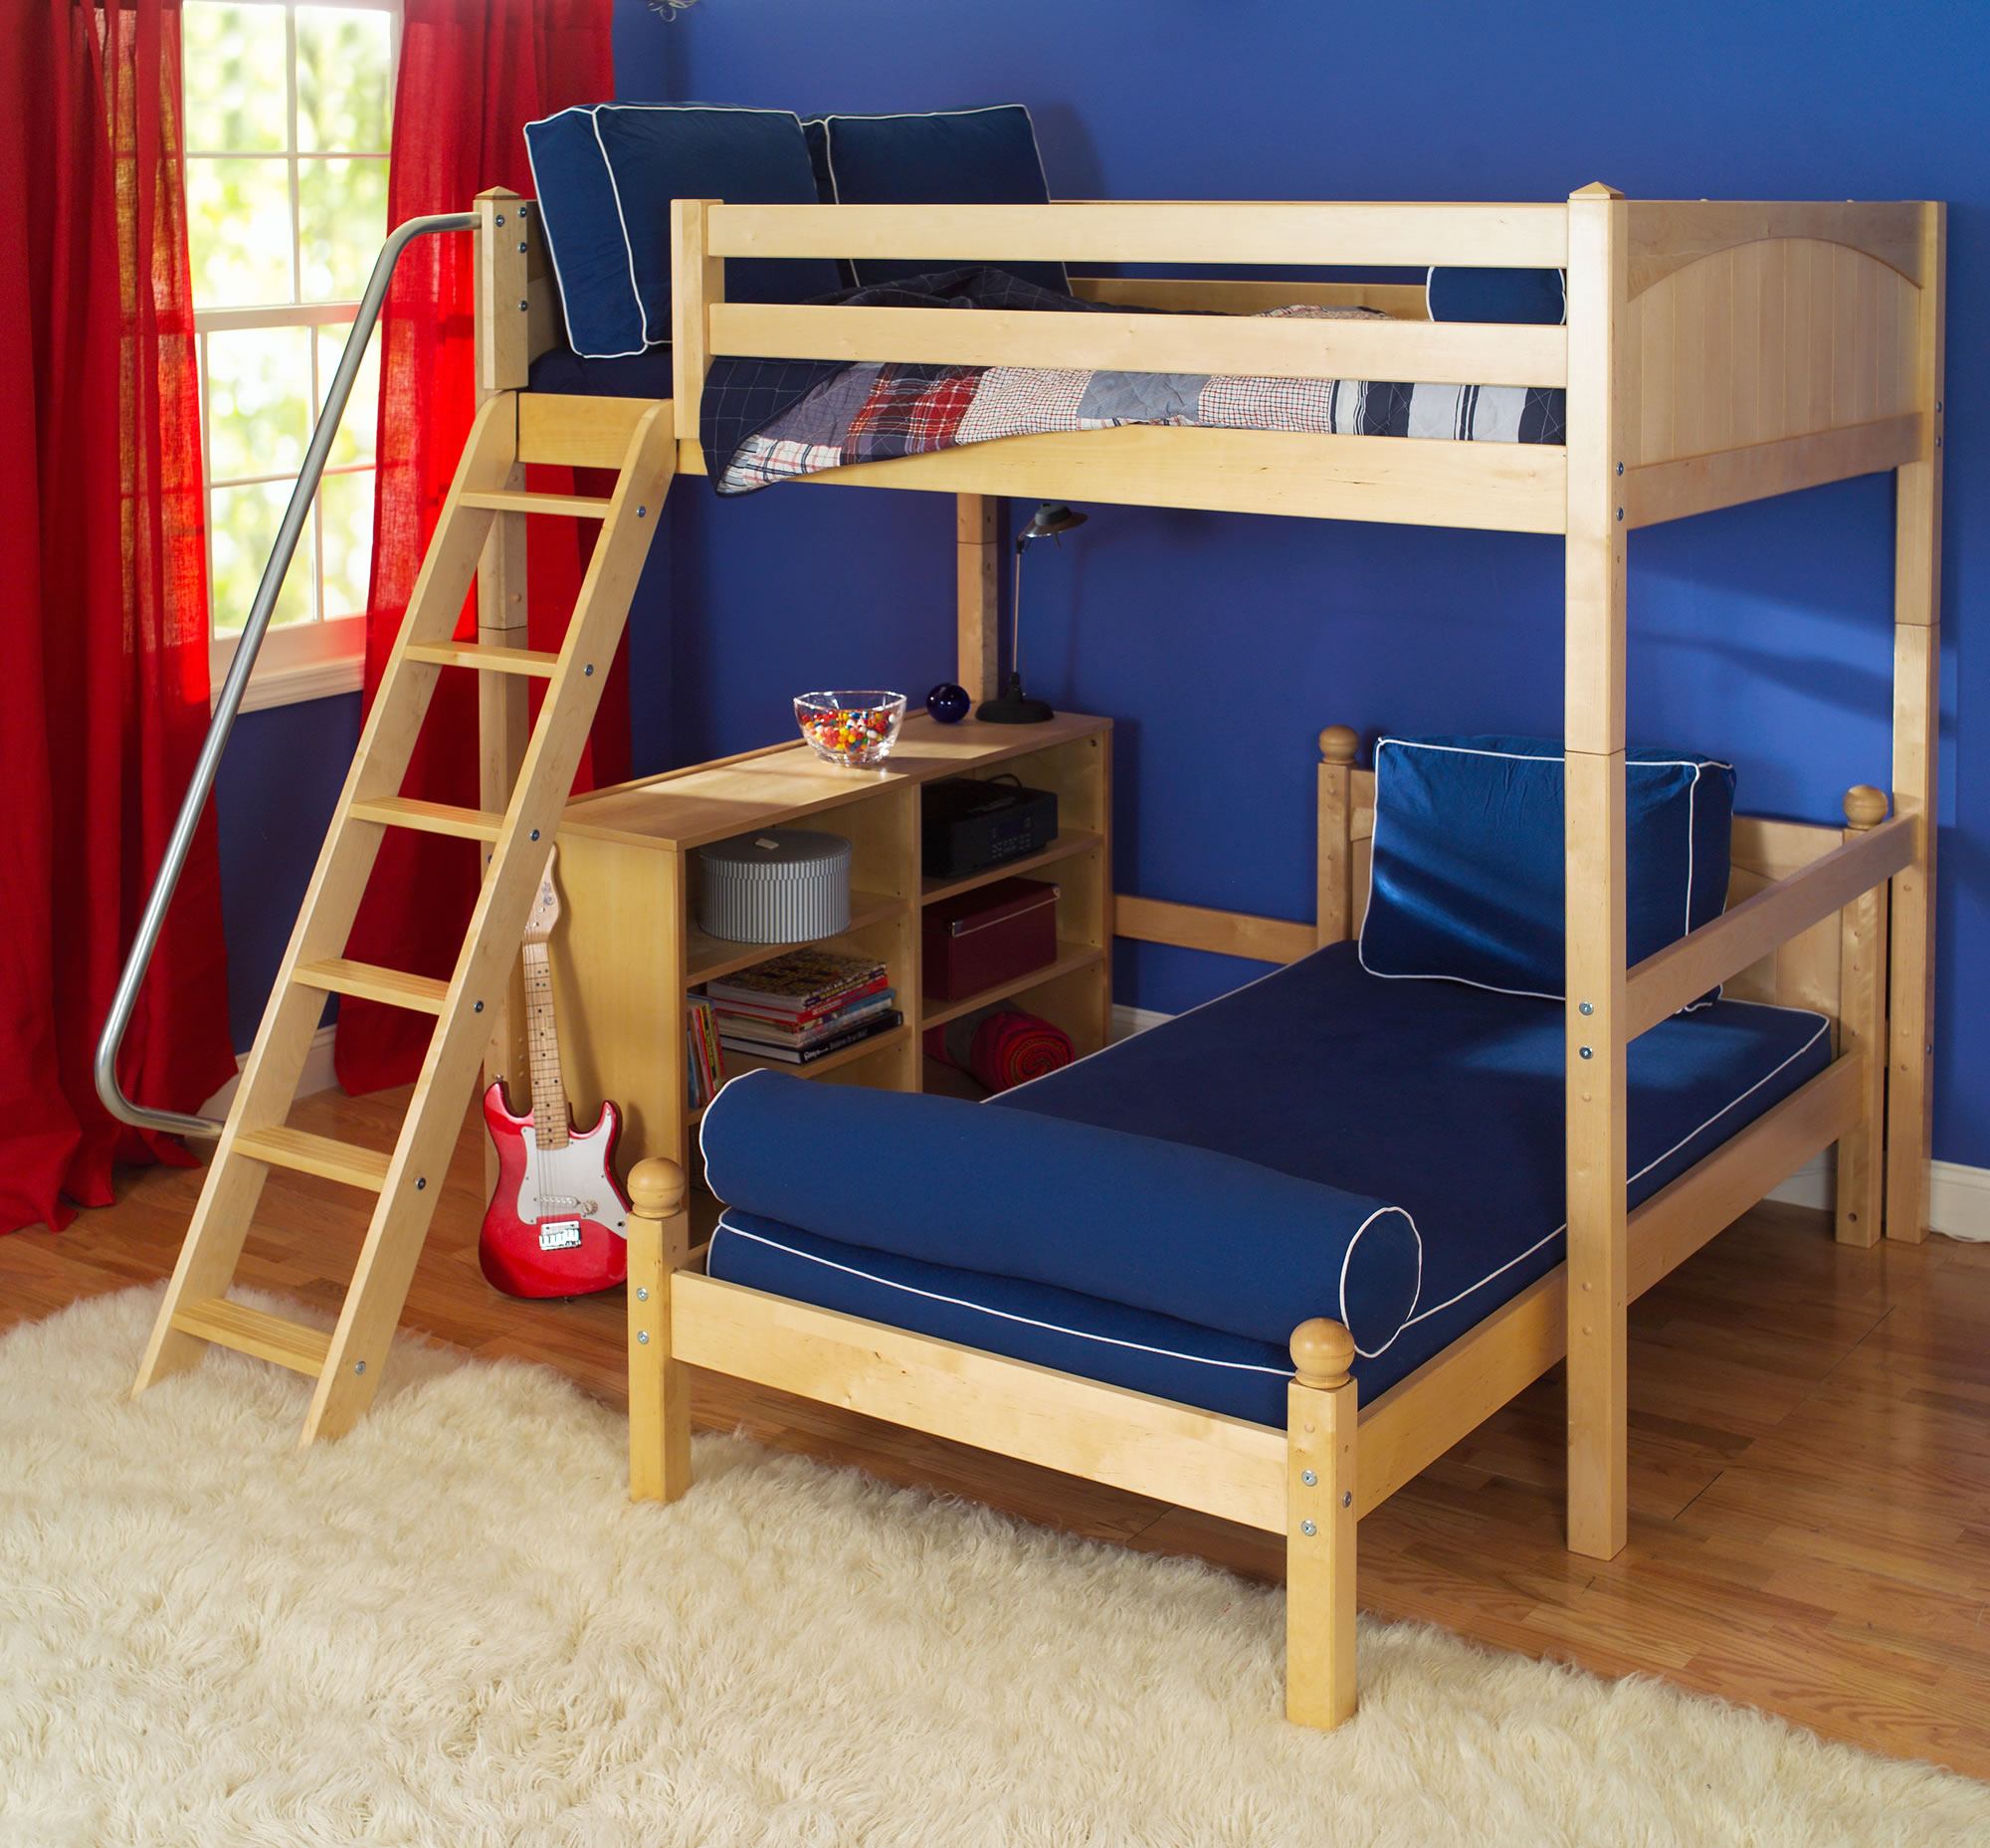 Maxtrix-Twin-over-Full-L-Shaped-Bunk-Bed-w.-Angle-Ladder-Bunk-Bed_0_0 ...